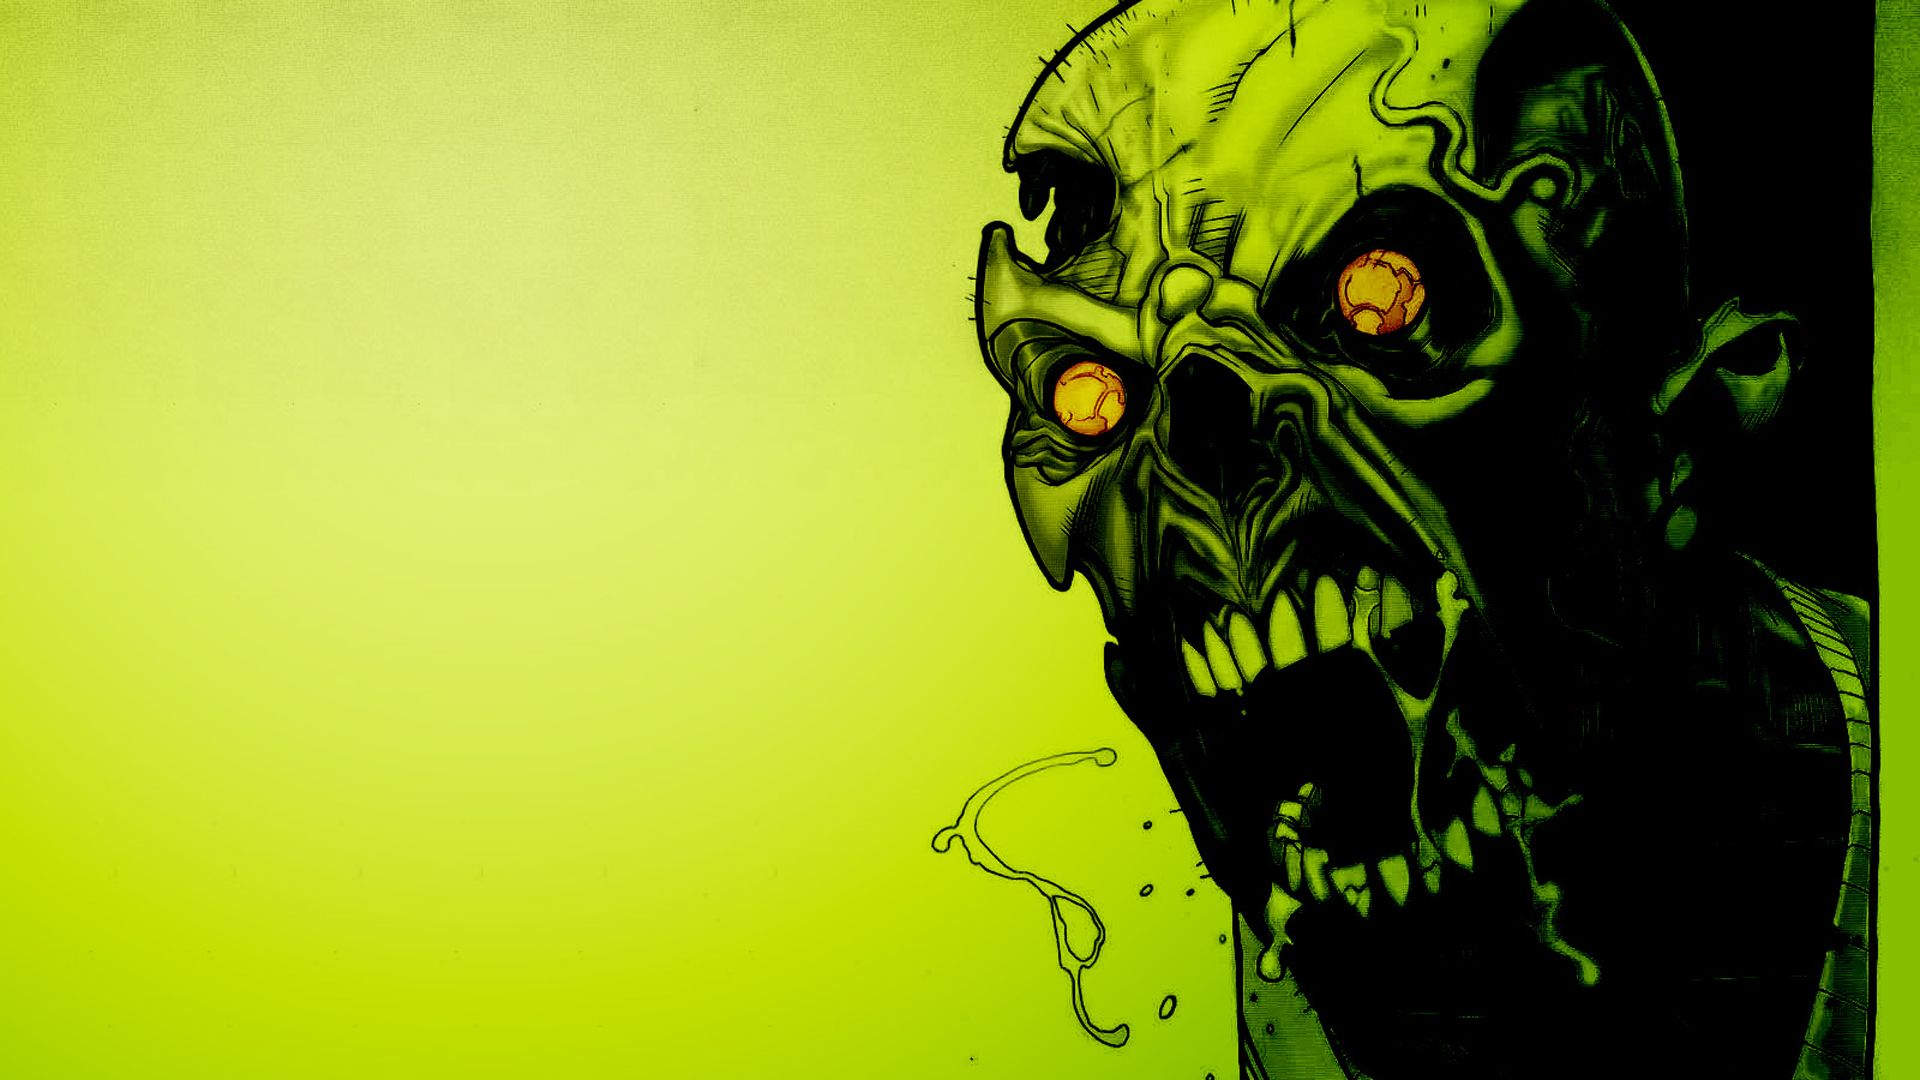 Scary Wallpaper Zombie Eyes Downloads Backgrounds